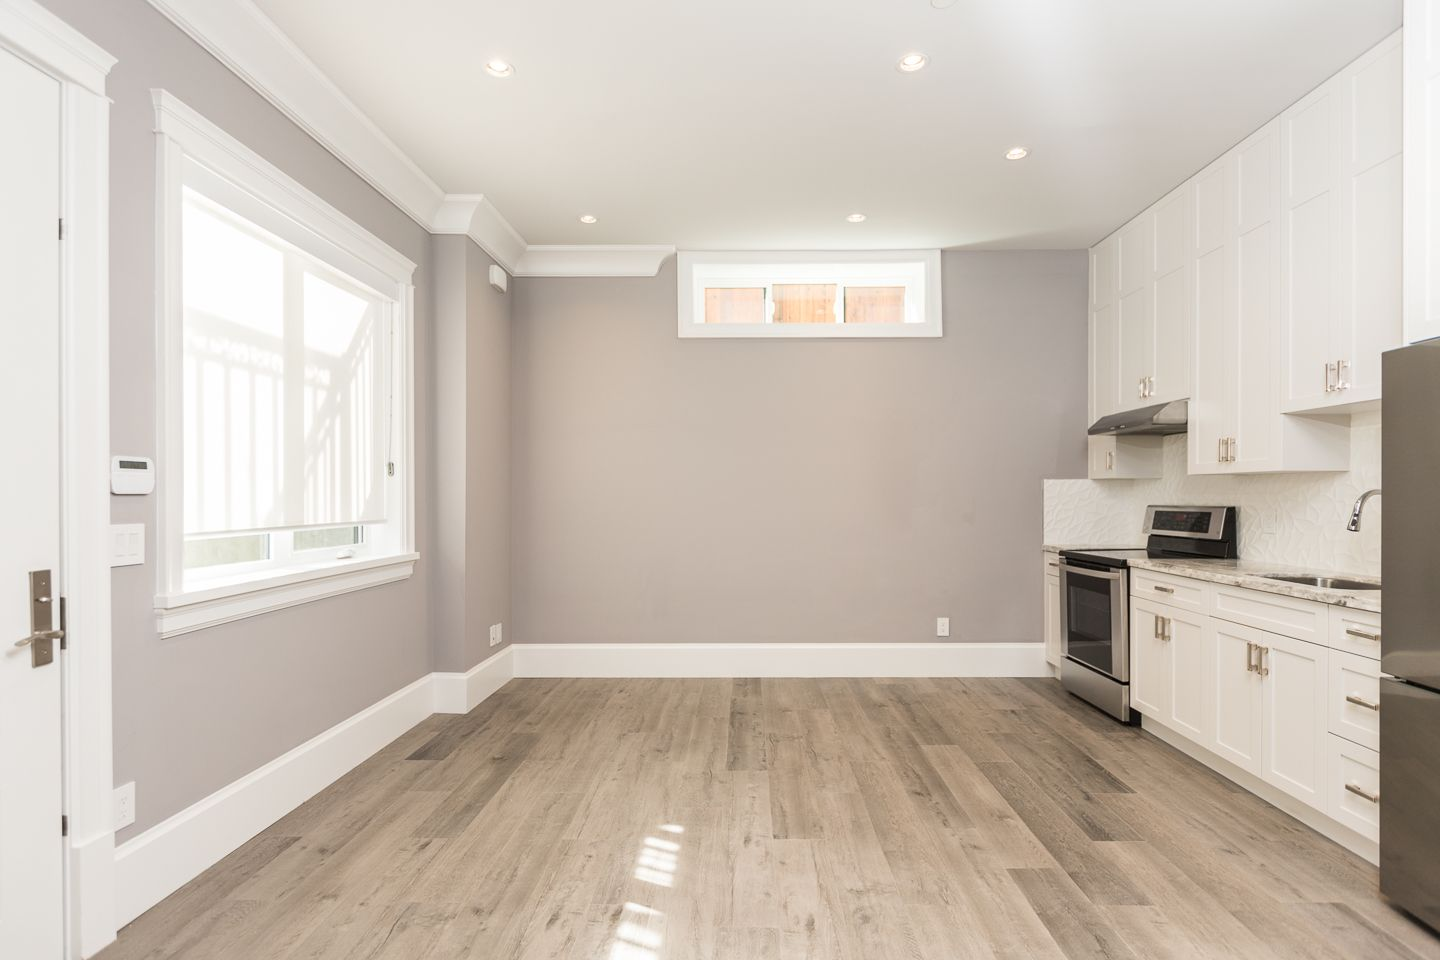 Photo 46: Photos: 1744 WEST 61ST AVE in VANCOUVER: South Granville House for sale (Vancouver West)  : MLS®# R2546980